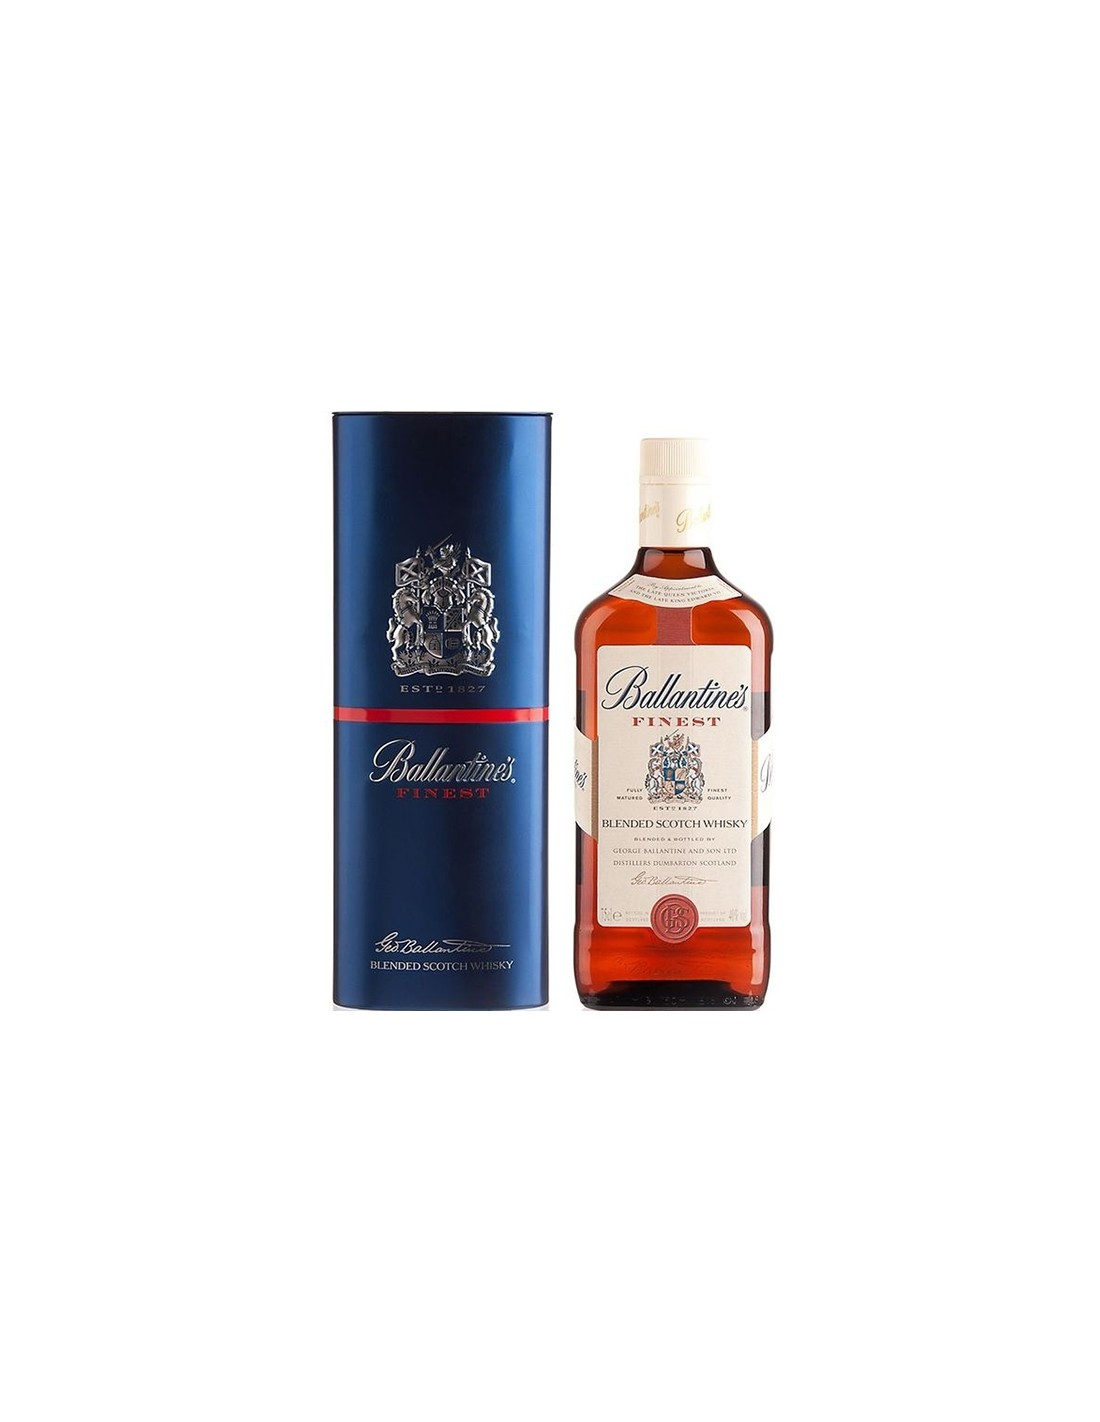 Whisky Ballantine's Finest + cutie, 40% alc., 0.7L, Scotia